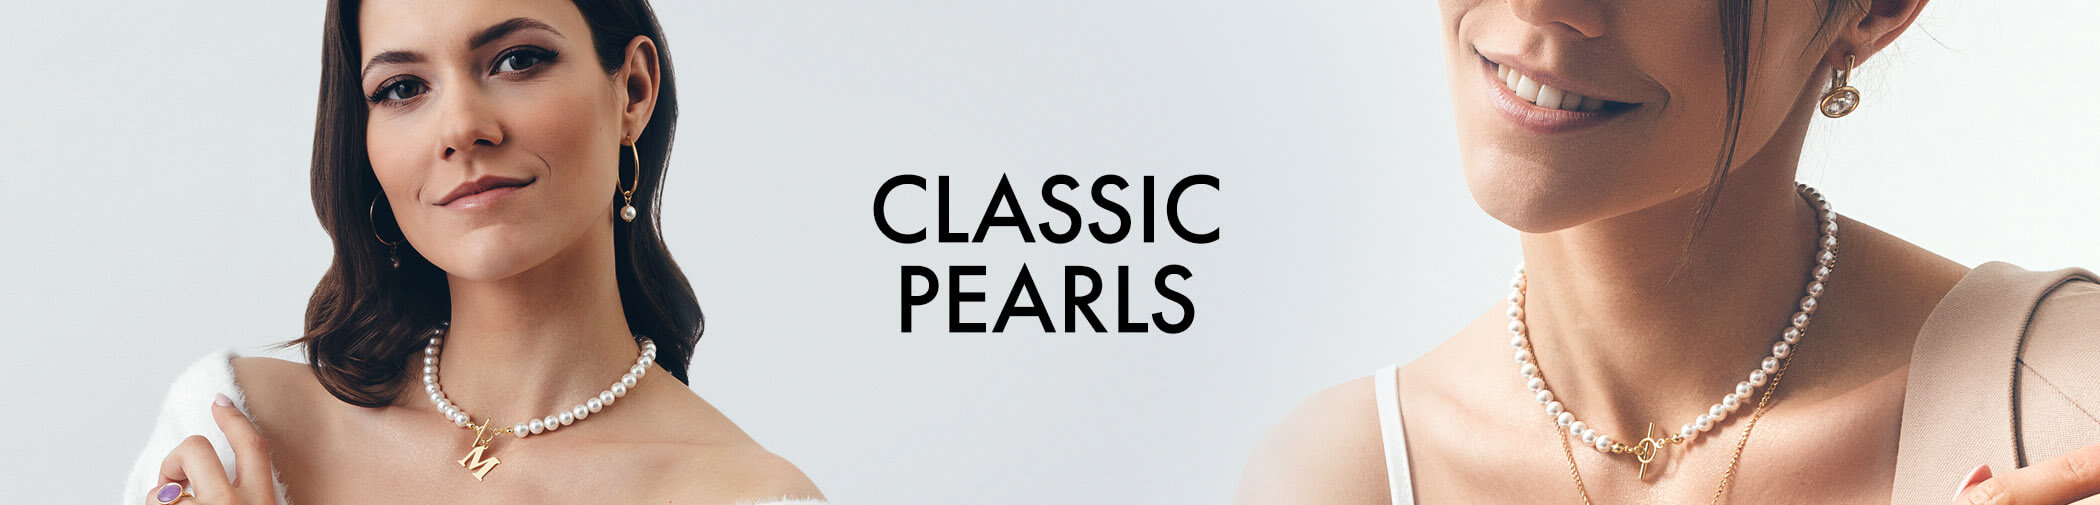 Classic Pearls